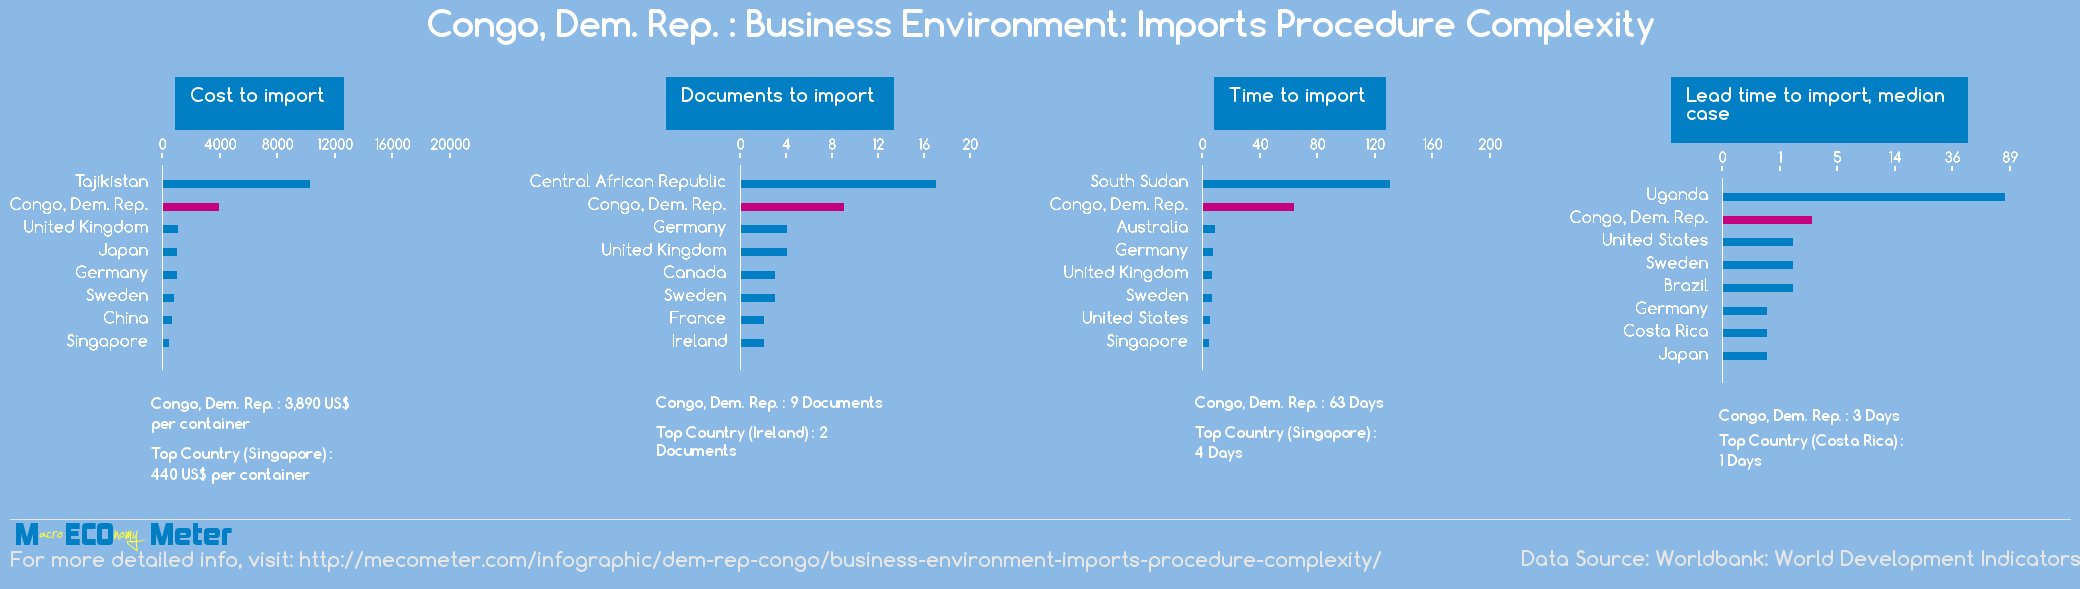 Congo, Dem. Rep. : Business Environment: Imports Procedure Complexity